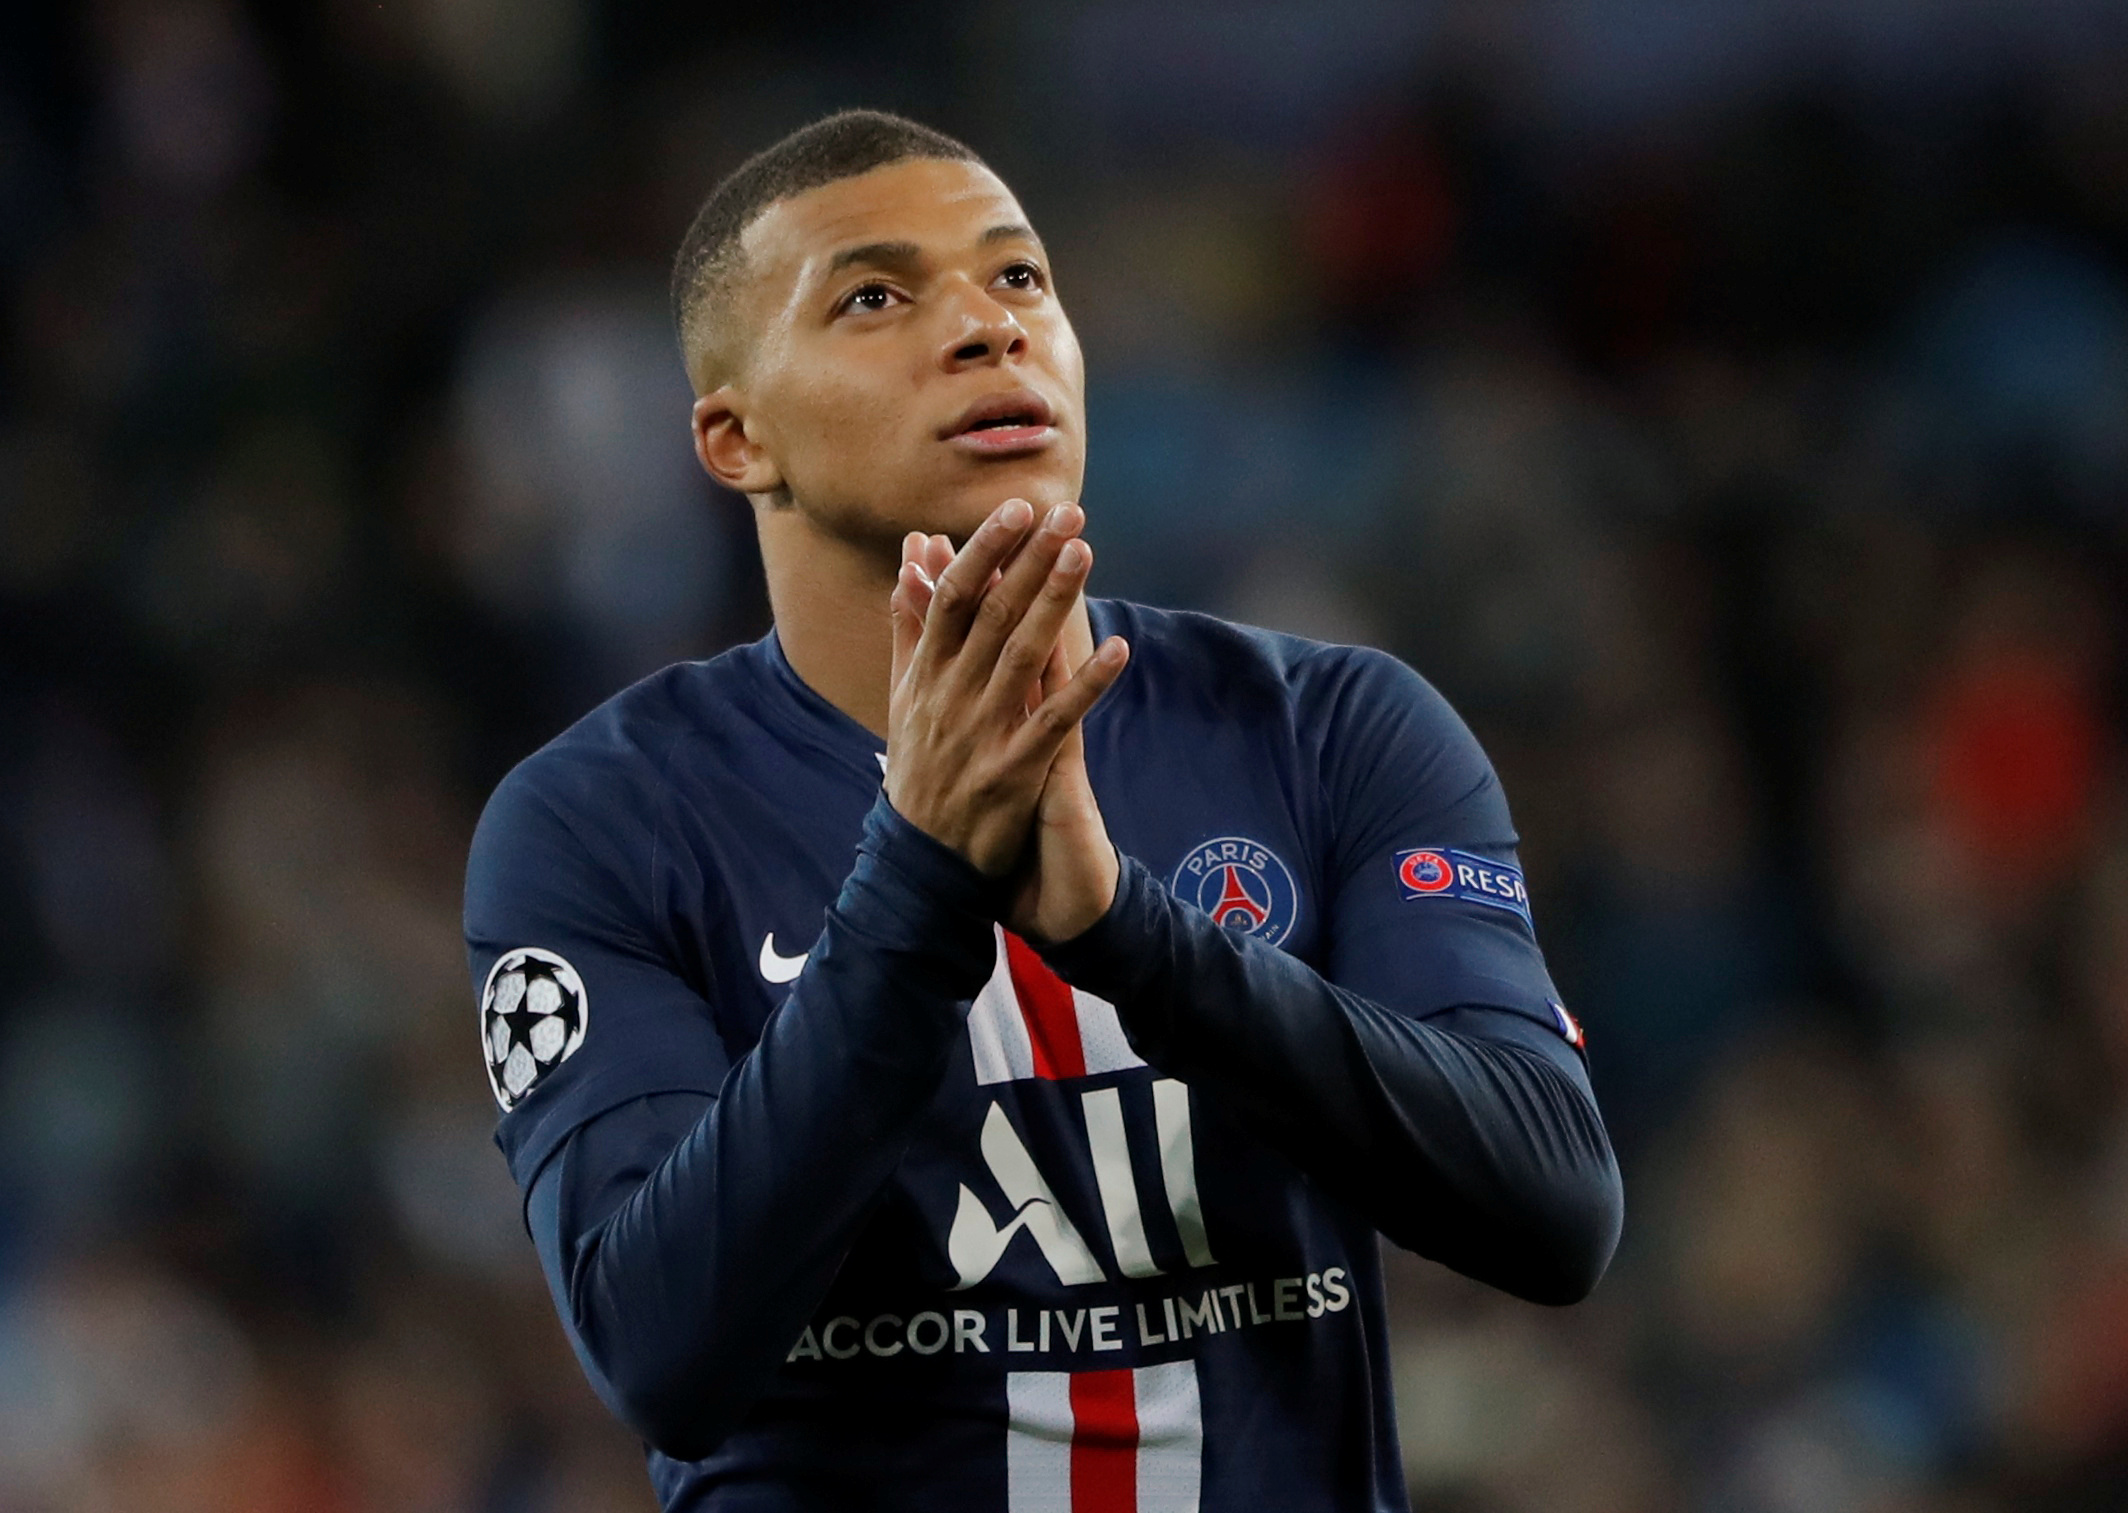 Mbappe's Ballon d'Or statements will leave you stunned